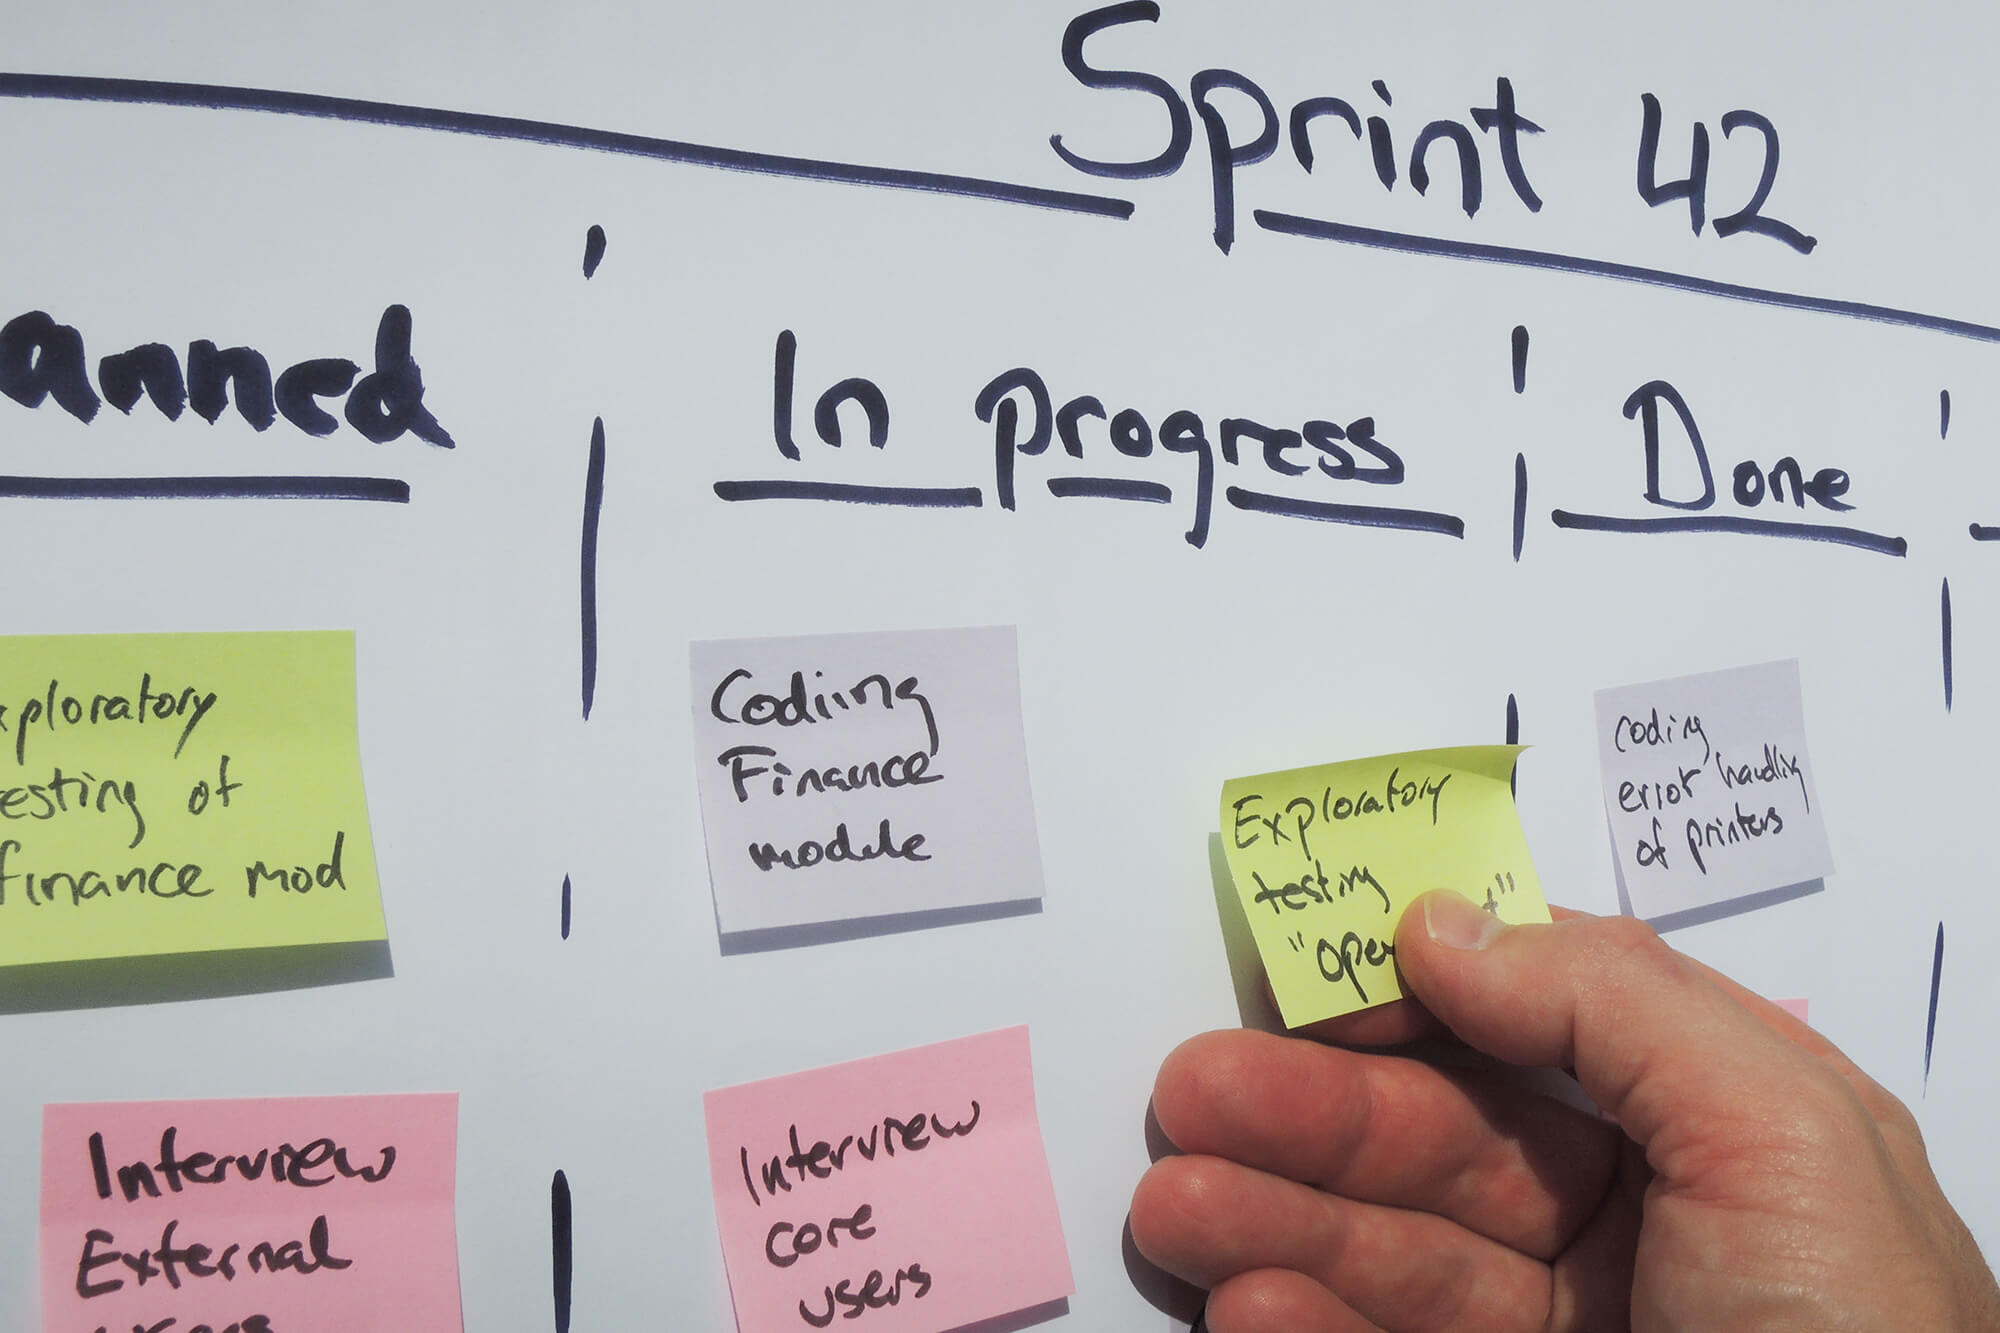 Agile Transformation: Practice What You Preach